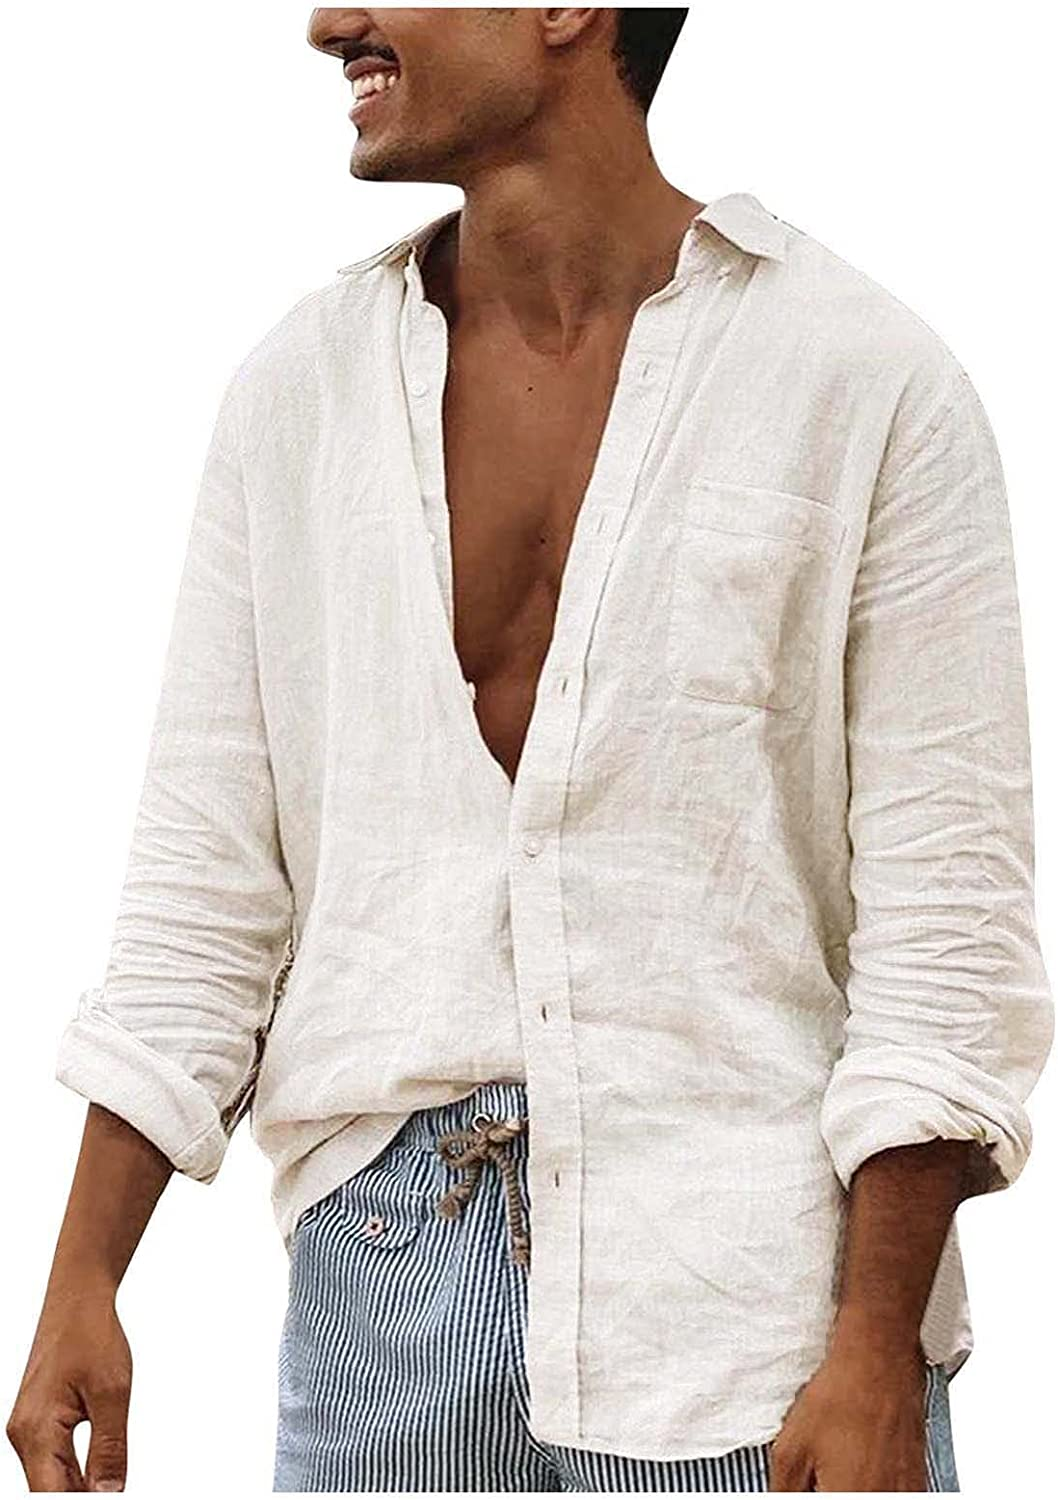 WOCACHI Cotton Linen Long Sleeve Shirts for Mens, Fall Men's Button Down Turn-Down Collar Casual Tops with Pockets